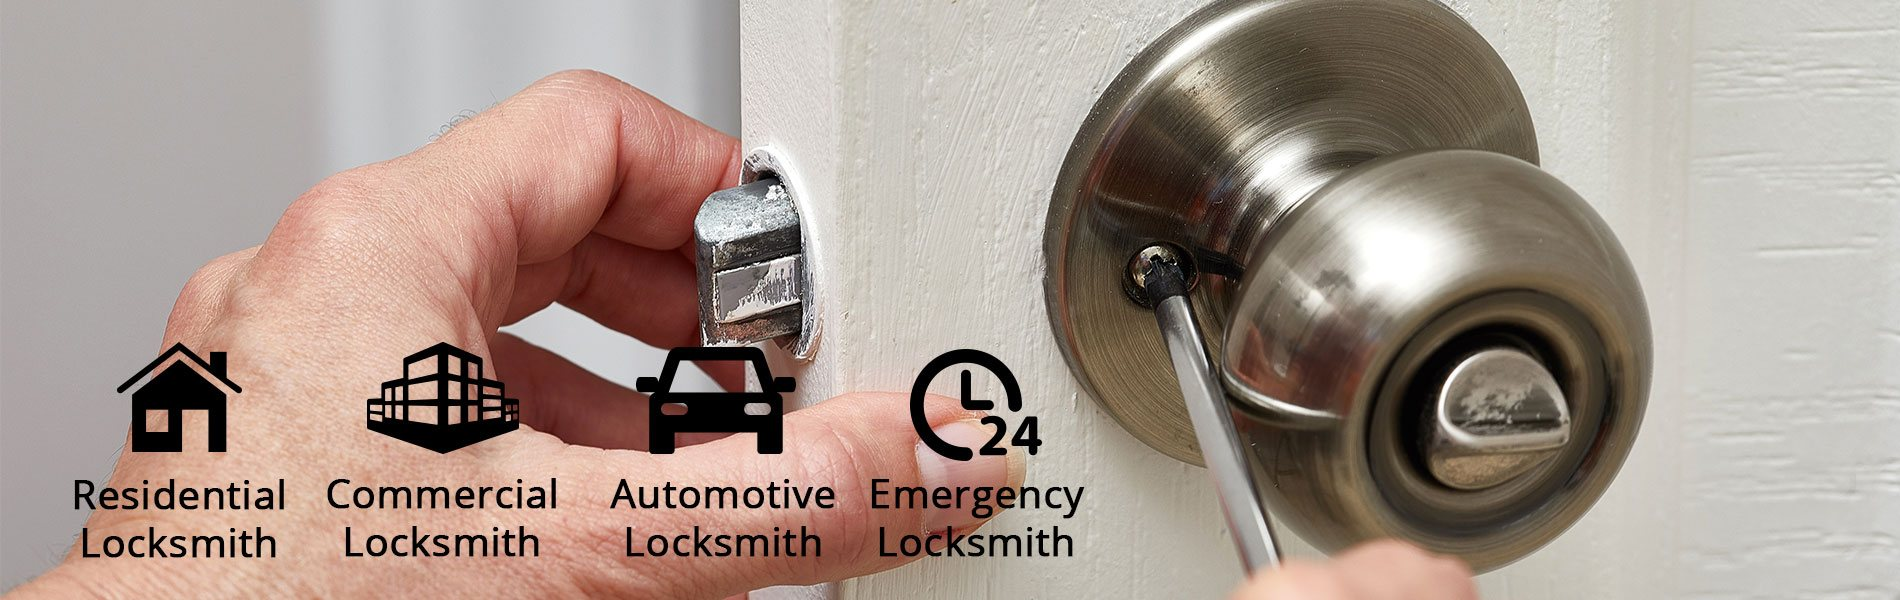 Lock Locksmith Services Indianapolis, IN 317-975-2287